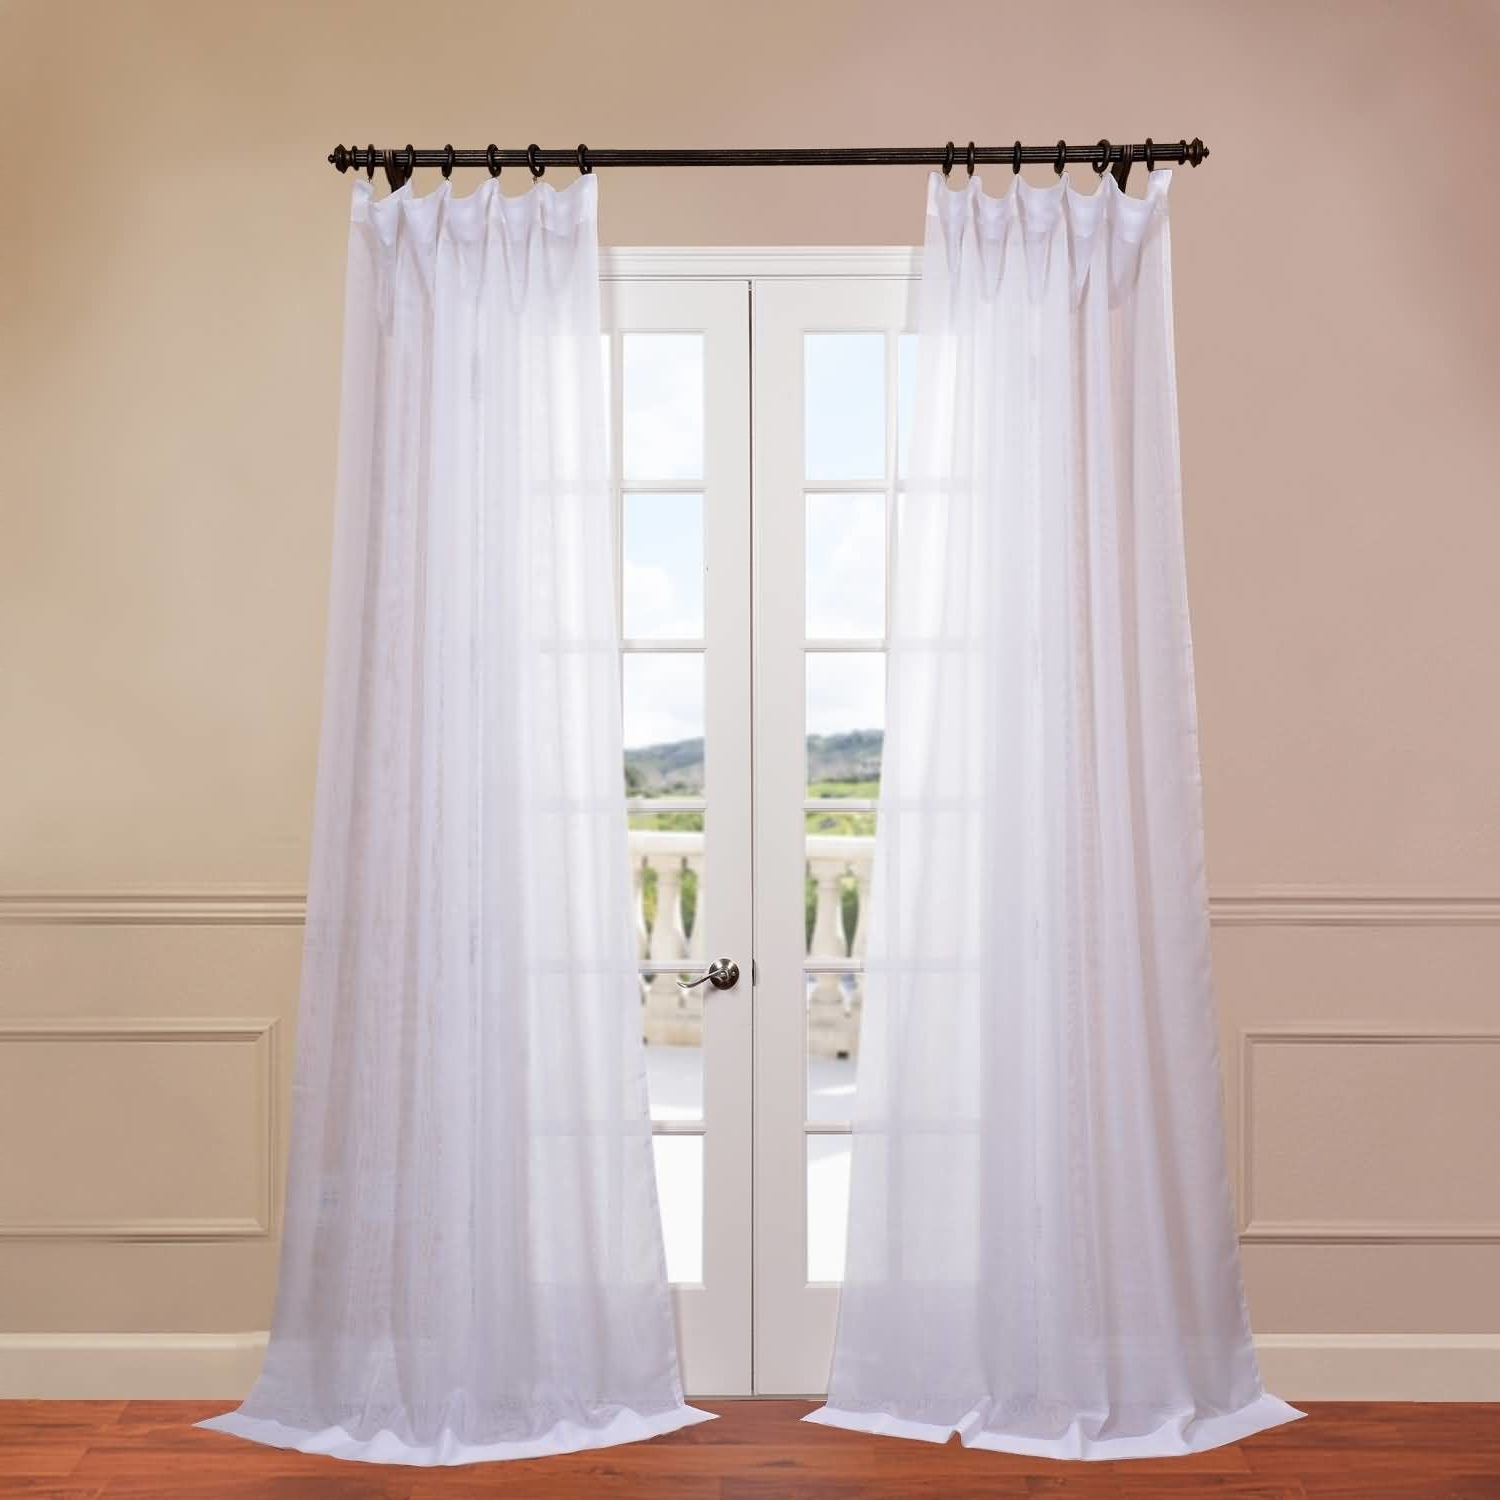 Signature Double Layered Sheer Single Curtain Panel Regarding Favorite Double Layer Sheer White Single Curtain Panels (View 17 of 20)